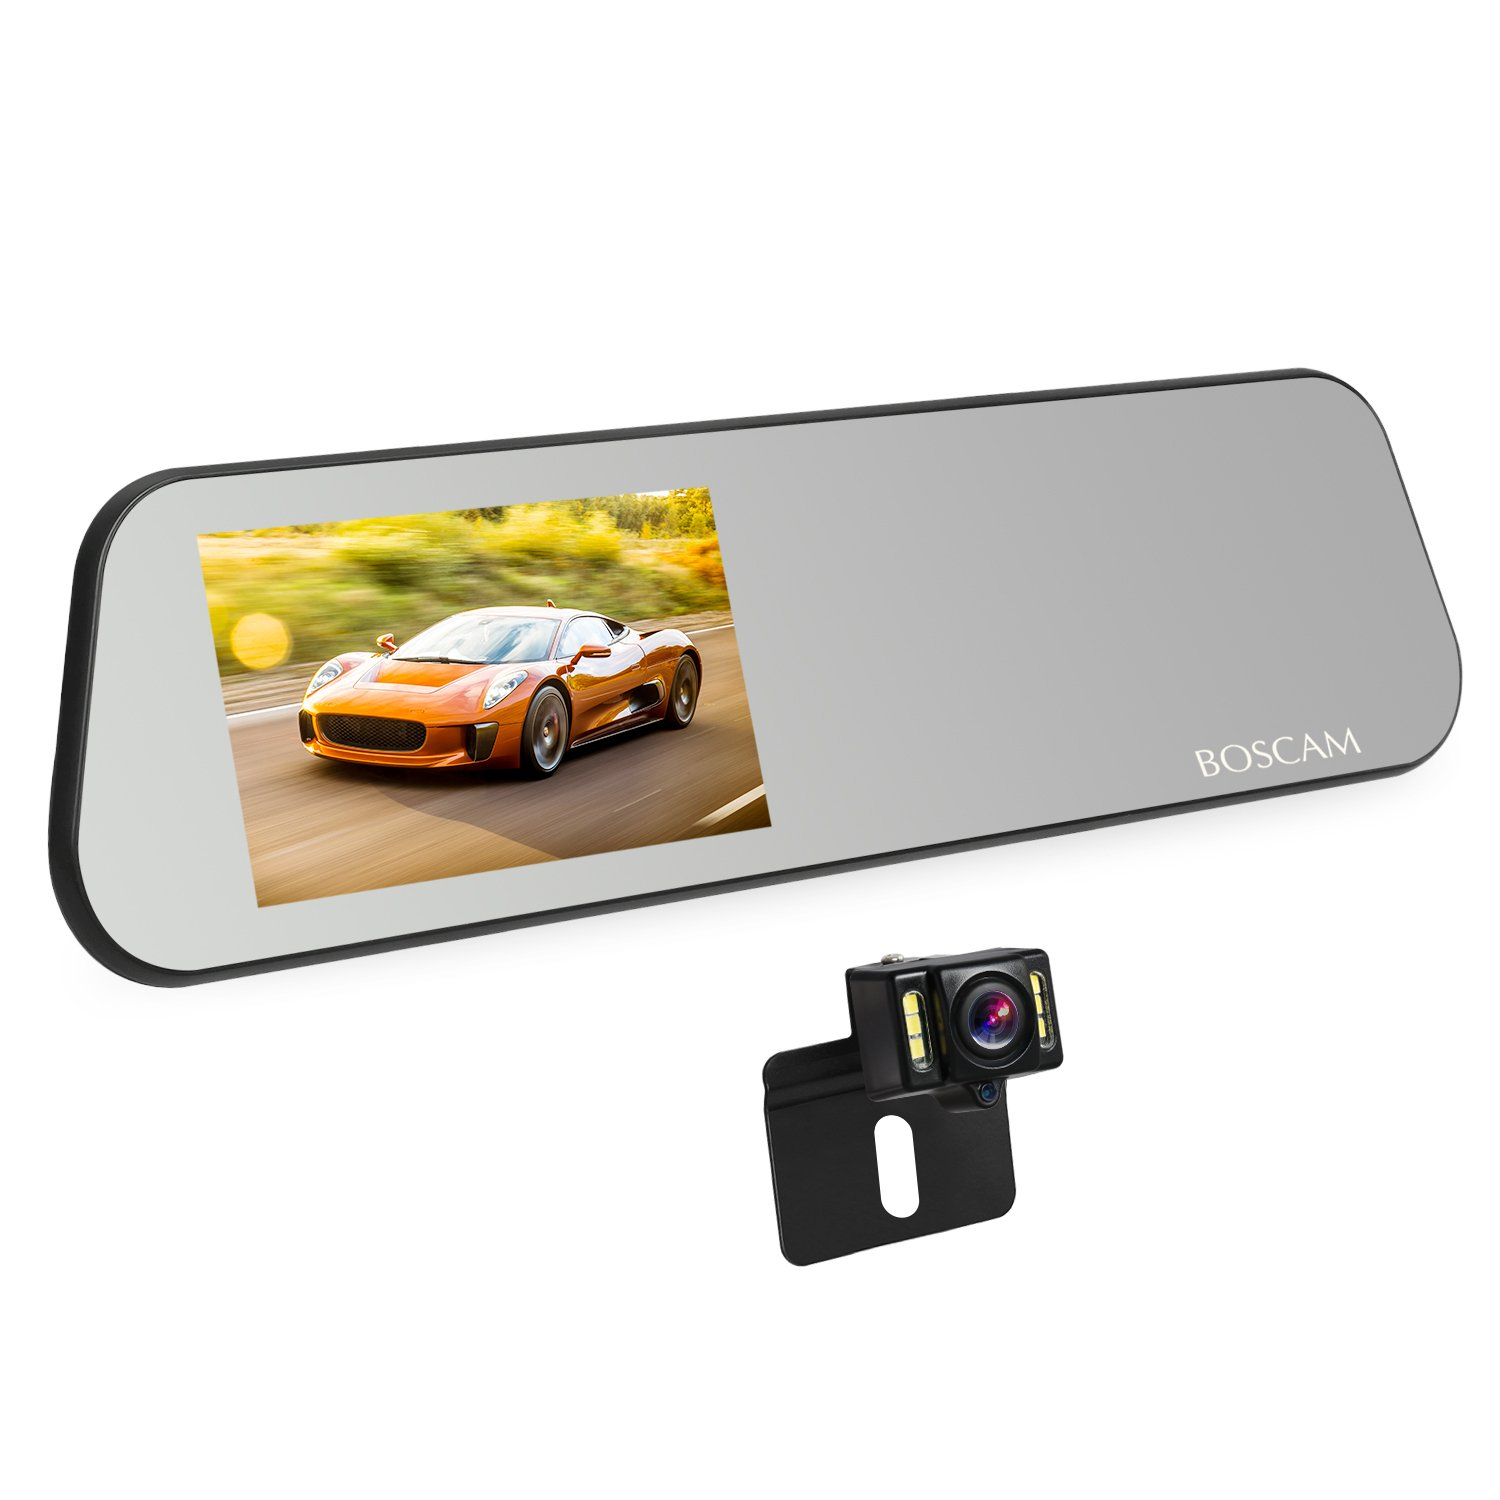 BOSCAM R1 Touch Screen Backup Camera Mirror Dash Cam Waterproof Back up Car Camera and 4.5-inch Full HD 1080P Rear View Mirror Cam Video Recorder with G-Sensor,Loop Recording, Motion Detection